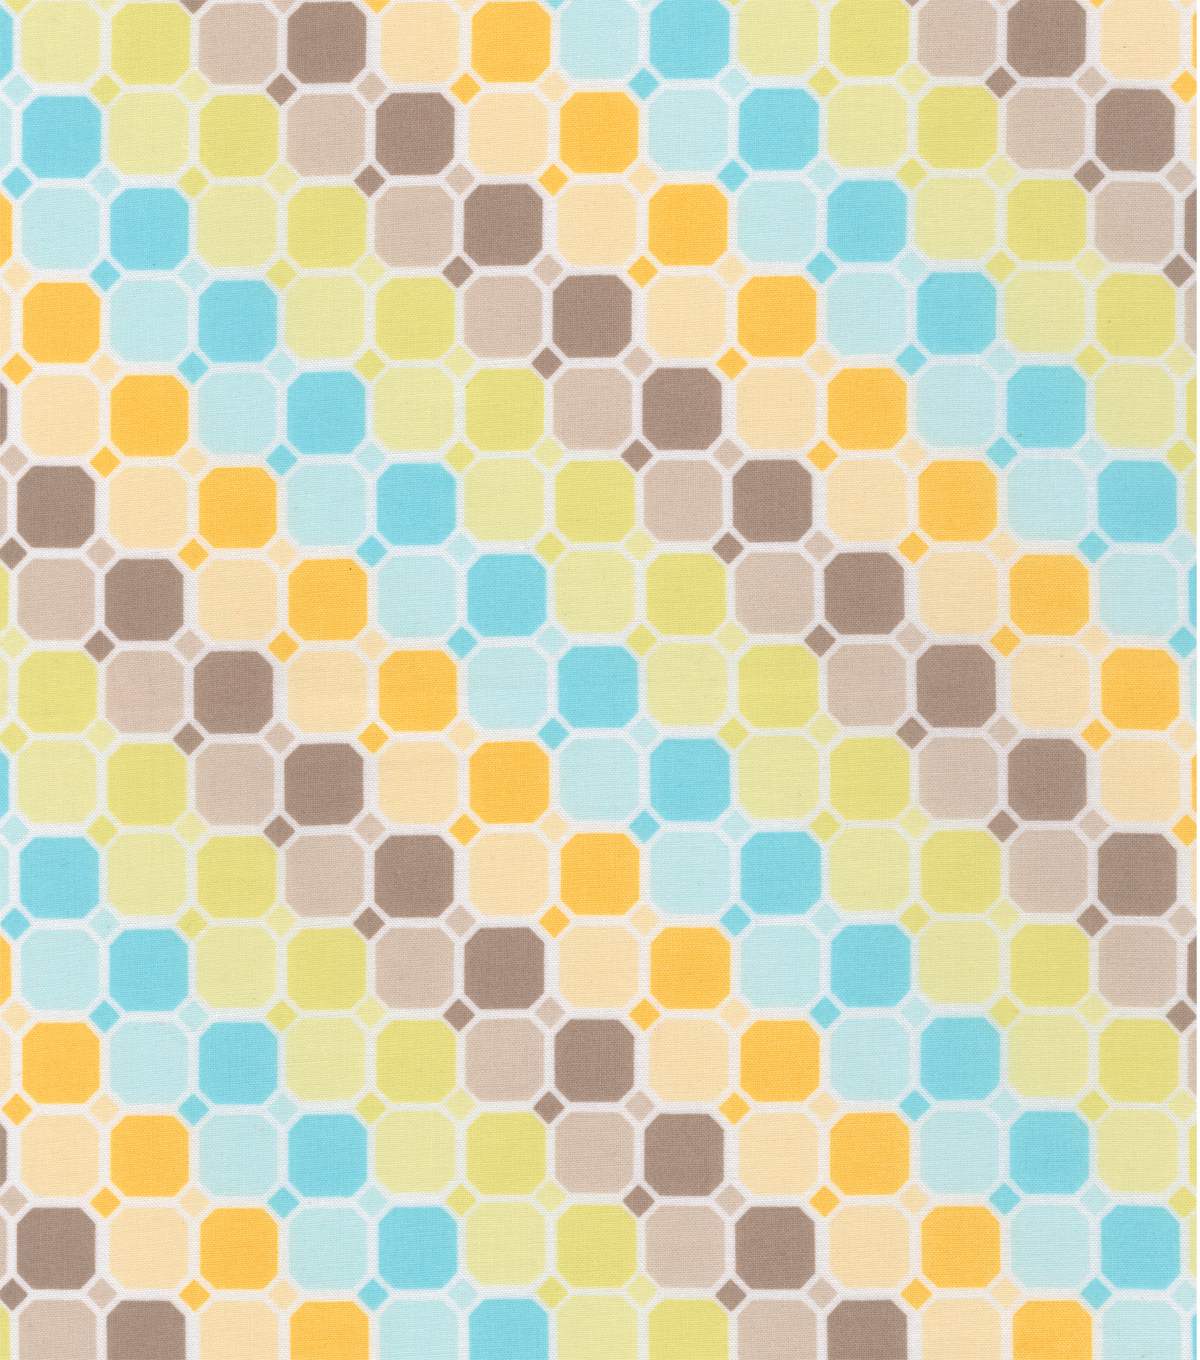 Nursery Fabric - Mod Hoot Tiles Multi Cotton